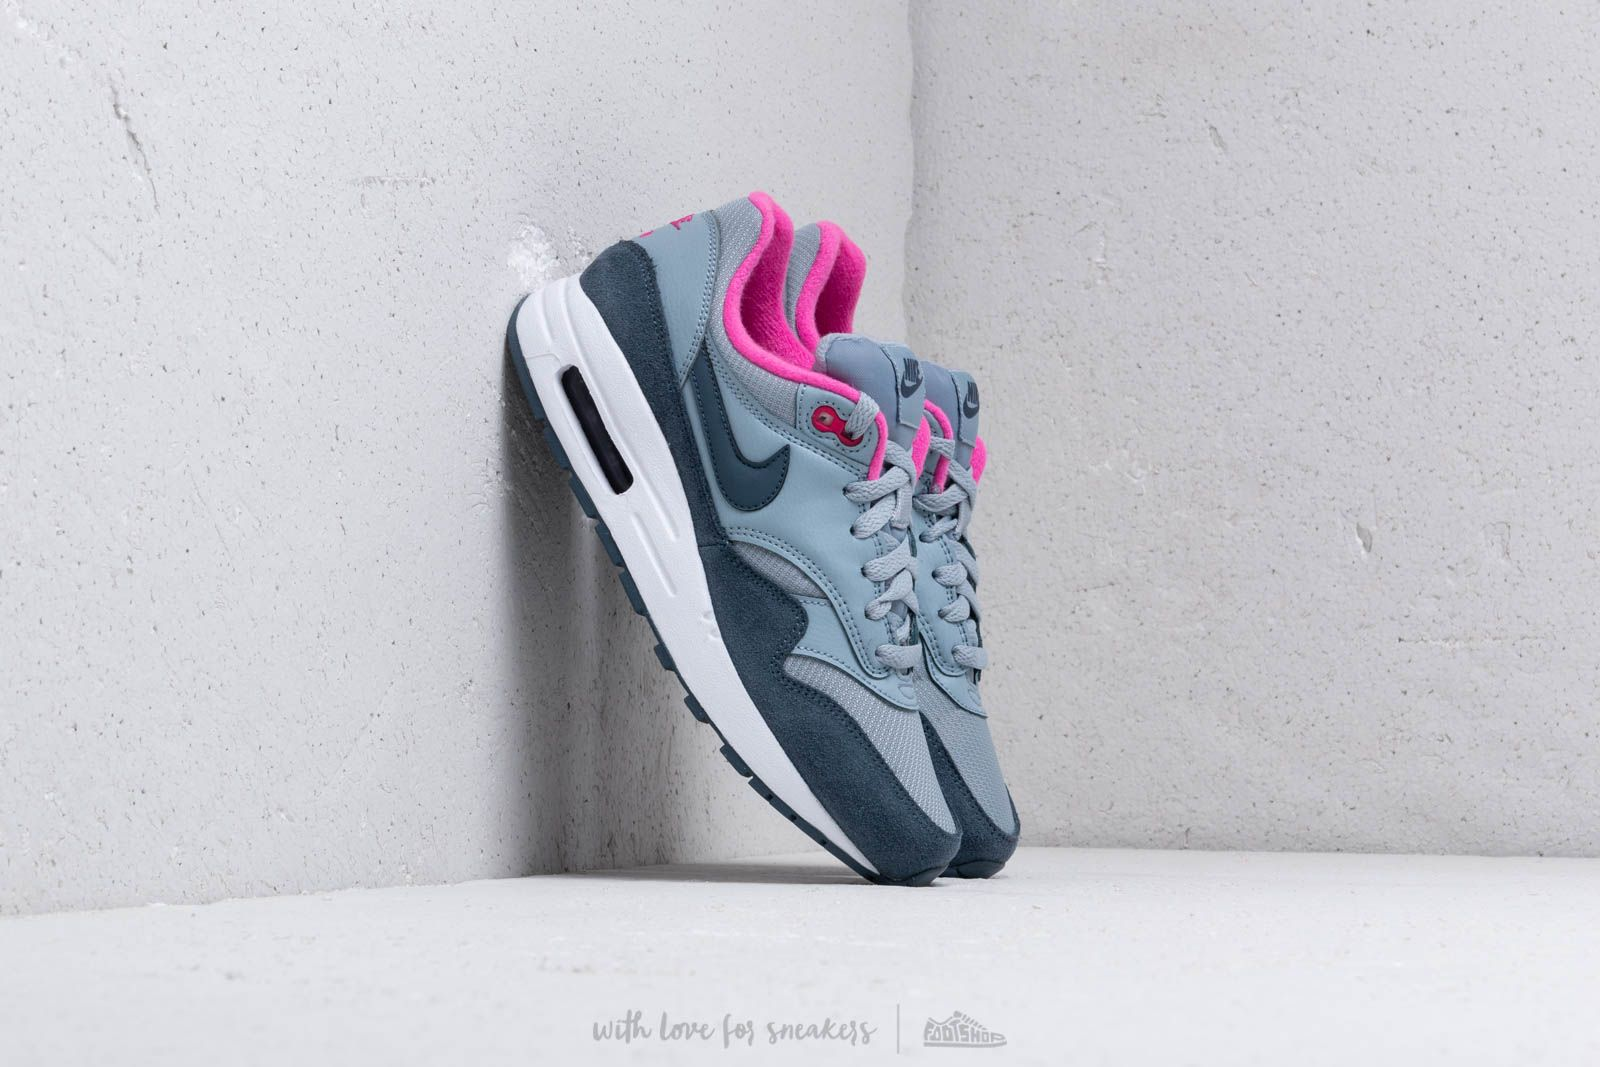 Nike Air Max 1 (GS) Obsidian Mist Monsoon Blue Laser Fuchsia | Footshop